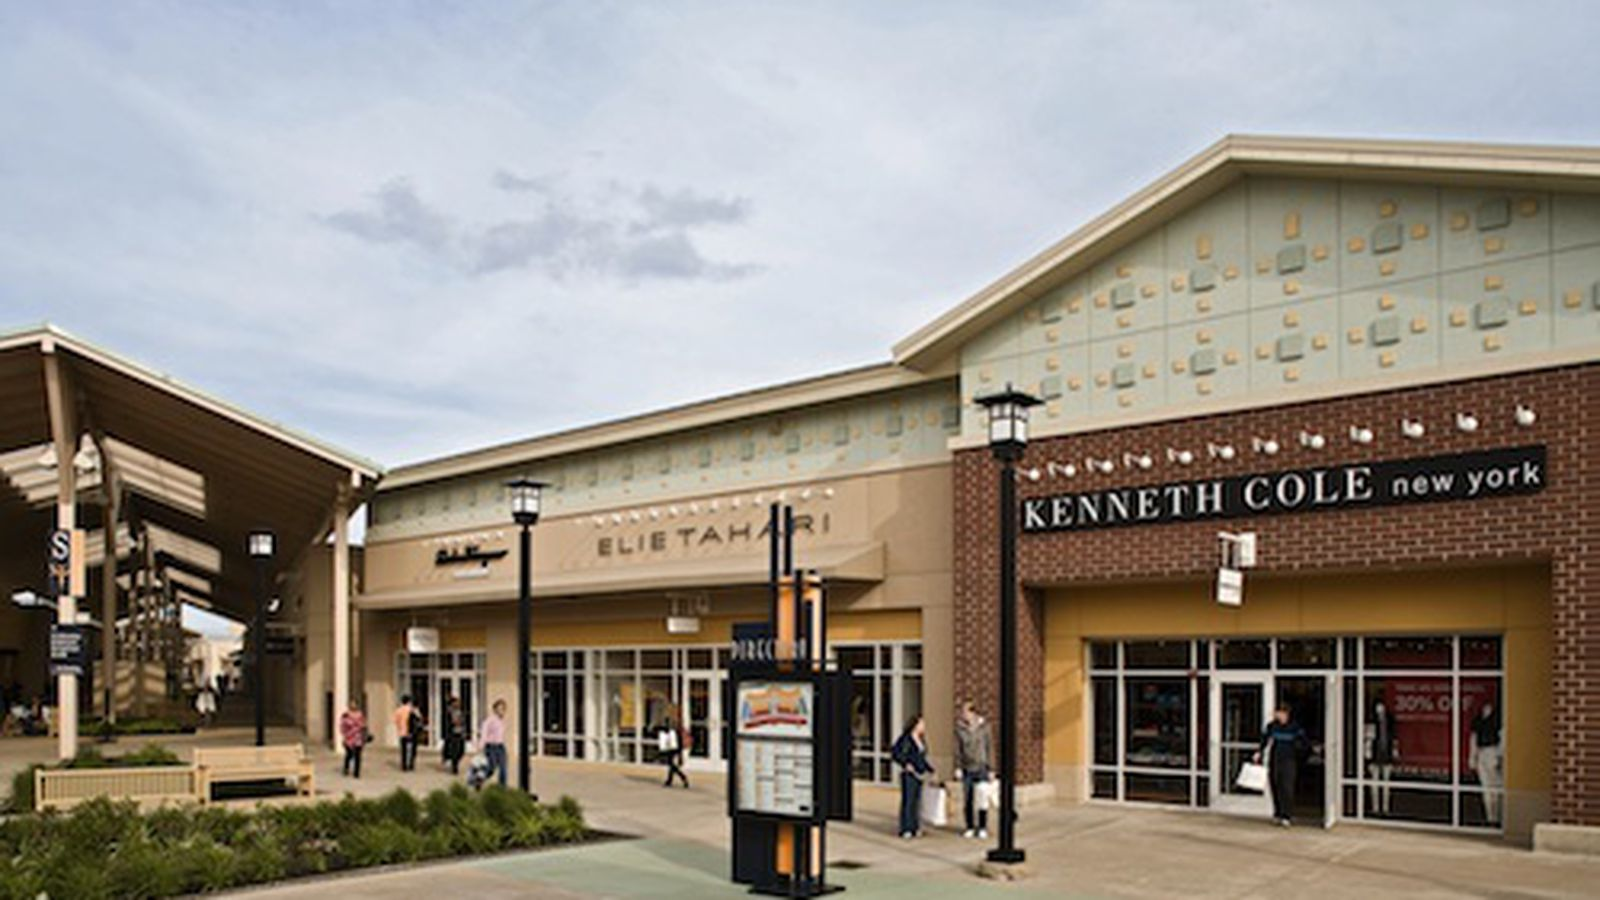 Union Station Offers Shuttle Service To Premium Outlets